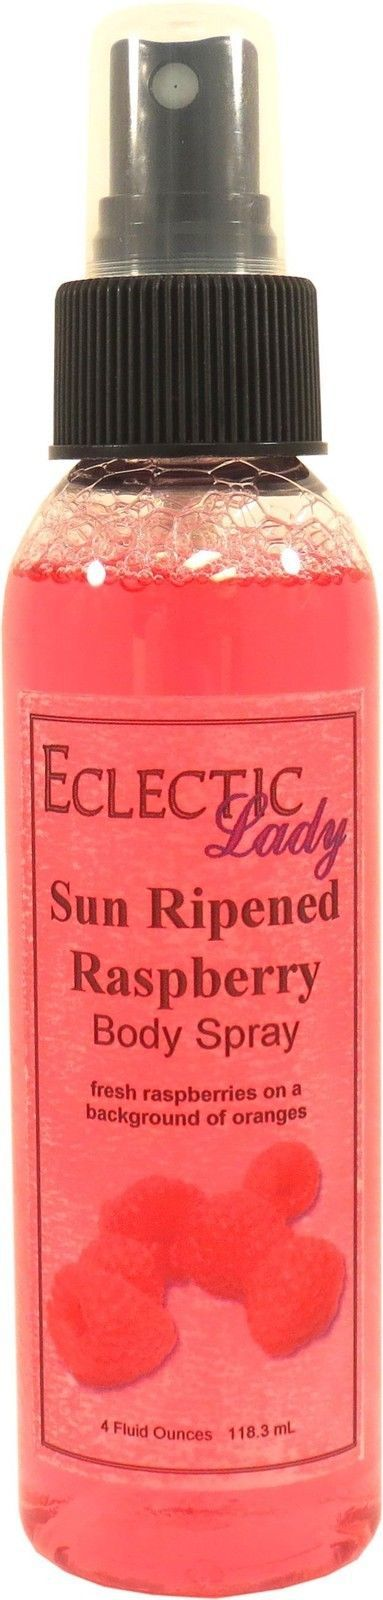 Sun Ripened Raspberry Body Spray